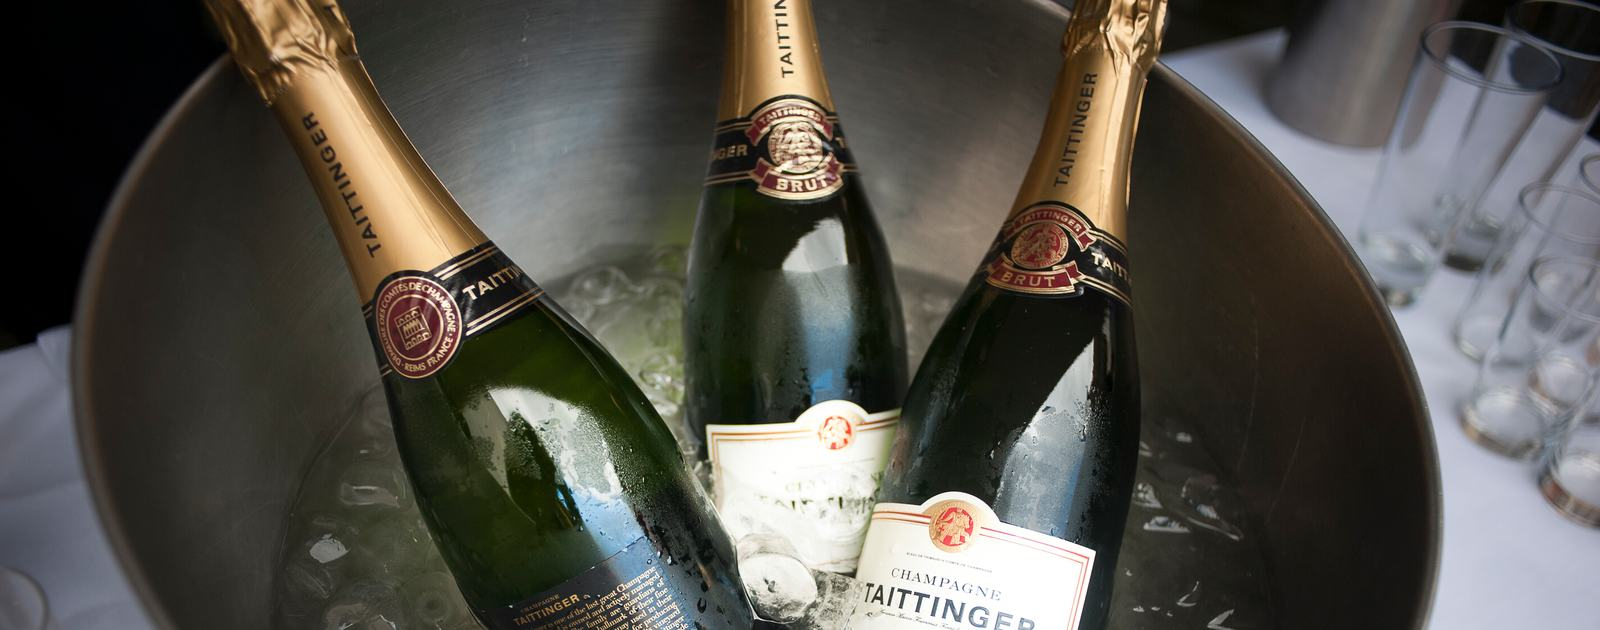 Champagne Bottles at a Wedding at the Royal Festival Hall Photo by Rebecca Portsmouth 2012